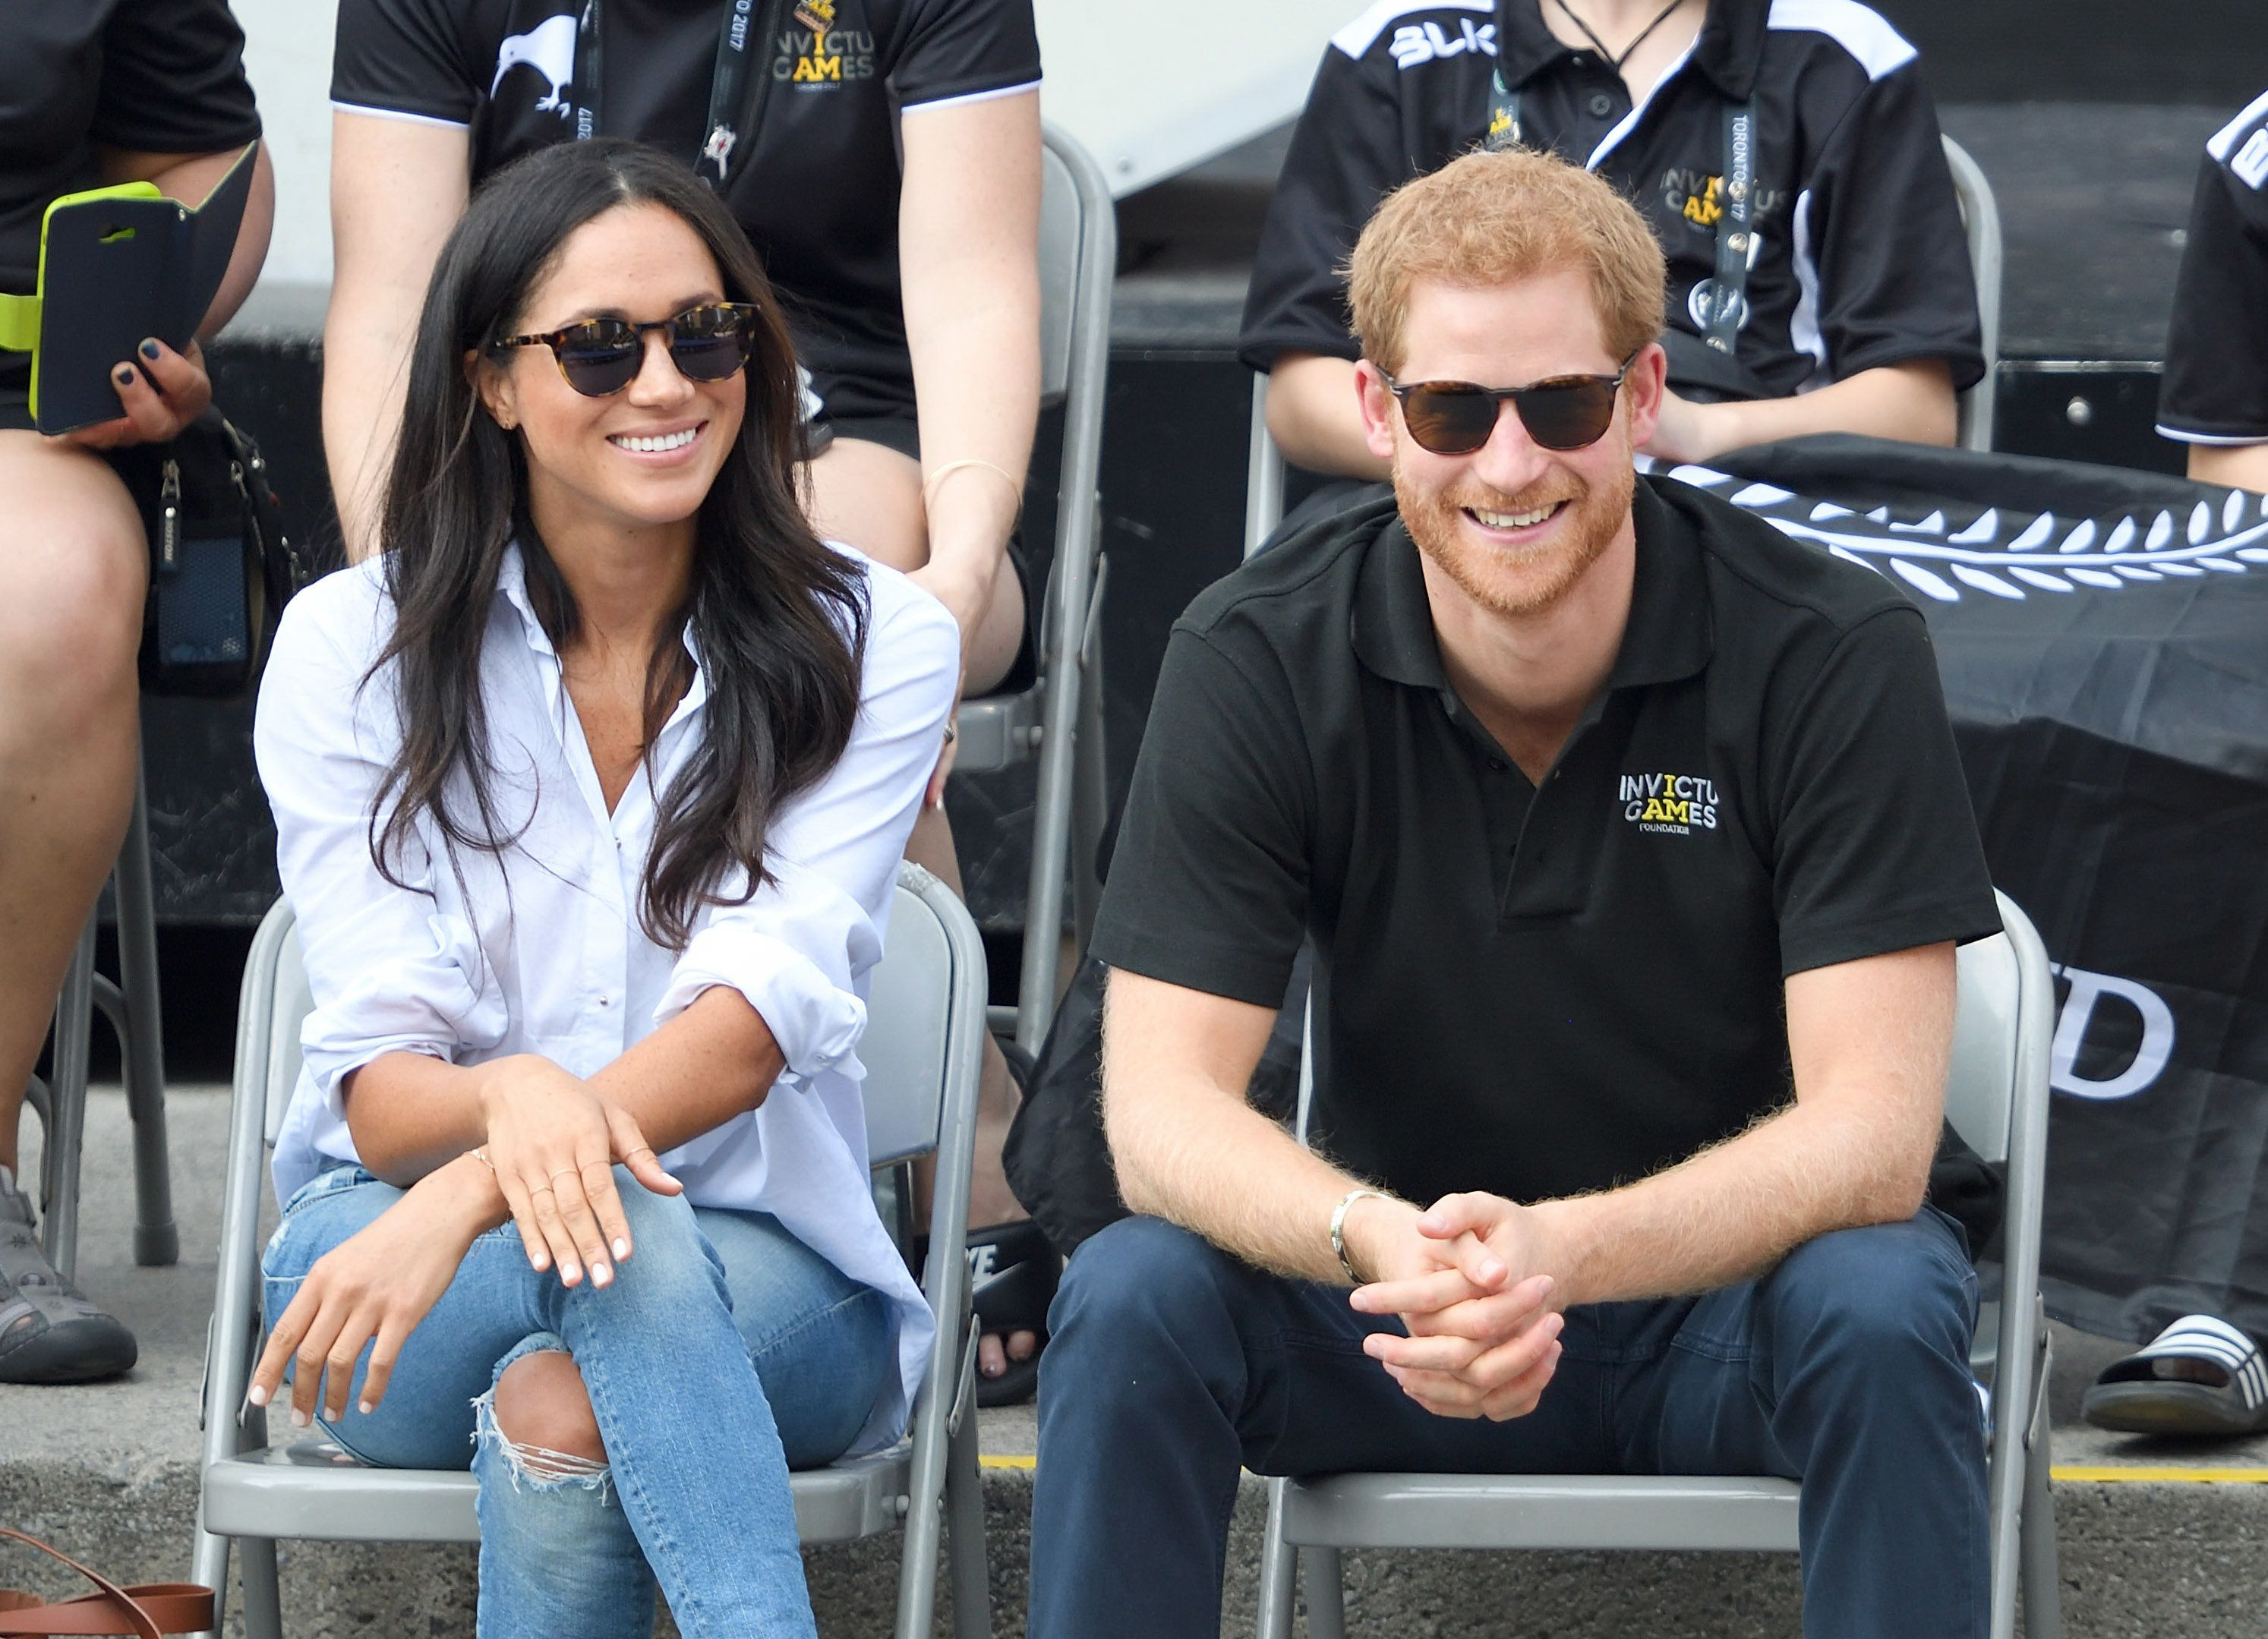 Meghan Markle and Prince Harry at the 2017 Invictus Games in Toronto. The couple is headed Down Under for this year